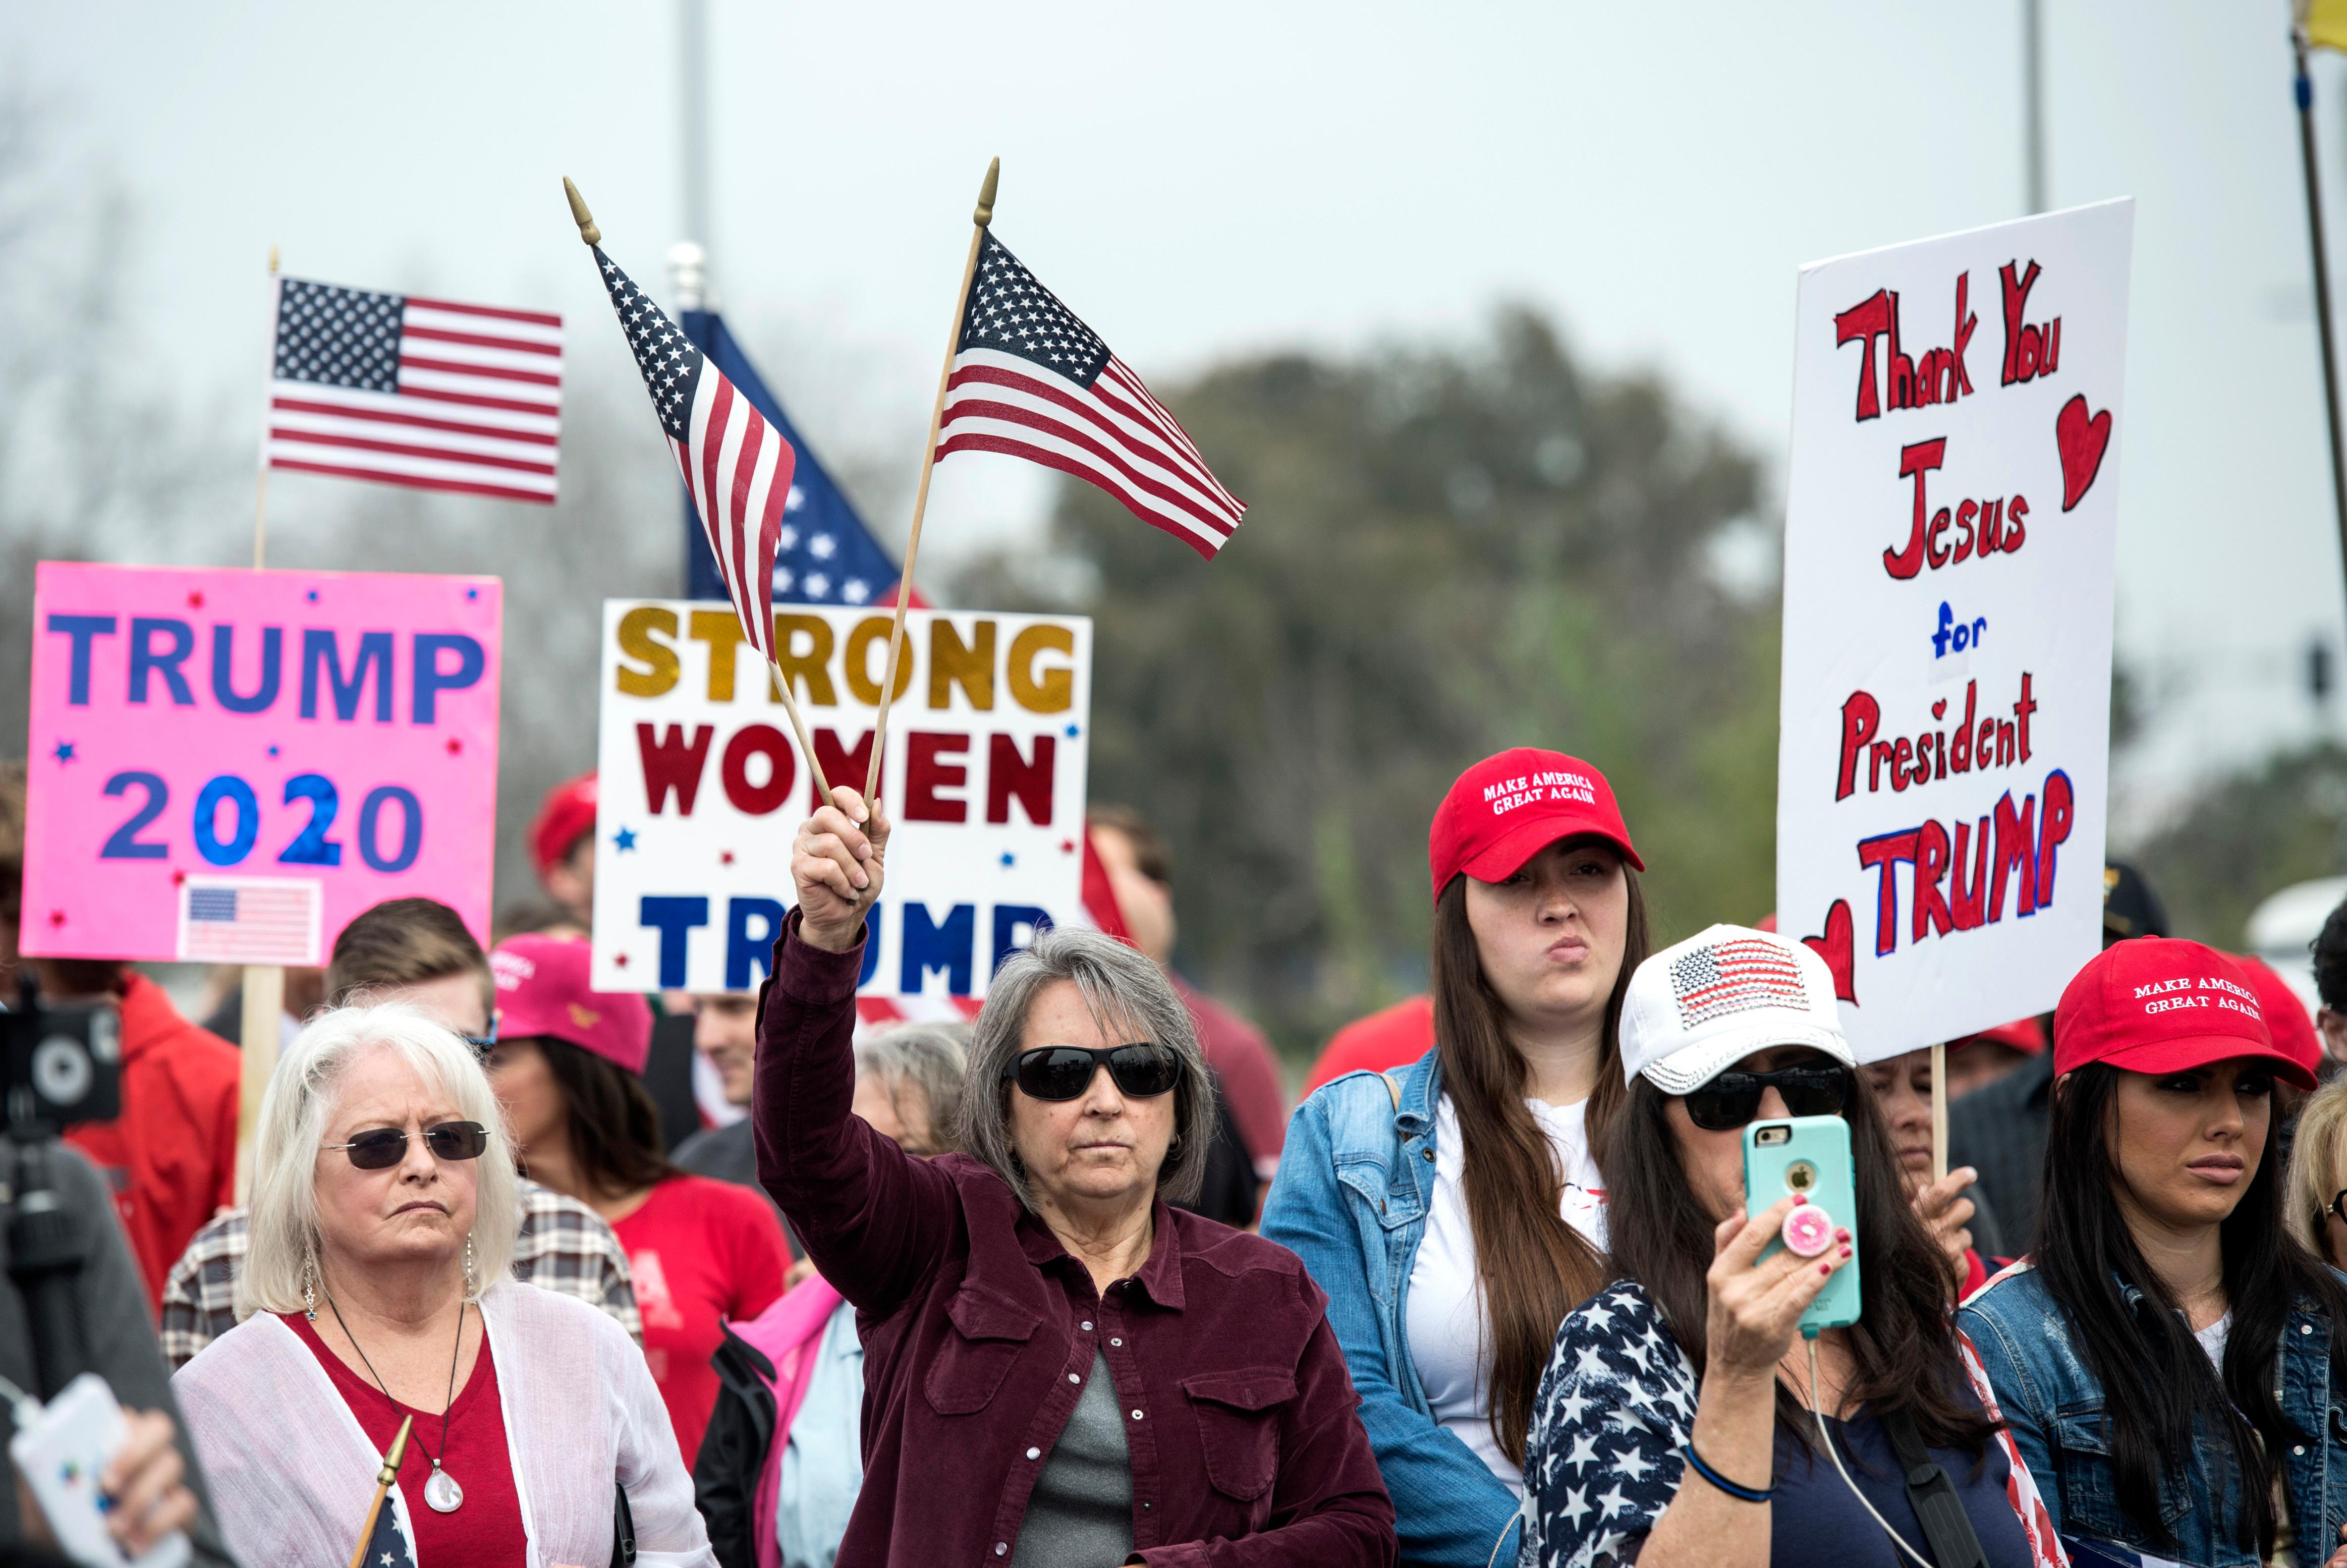 Supporters of President Trump gather for a rally Tuesday, March 13, 2018, in San Diego. (AP Photo/Kyusung Gong)